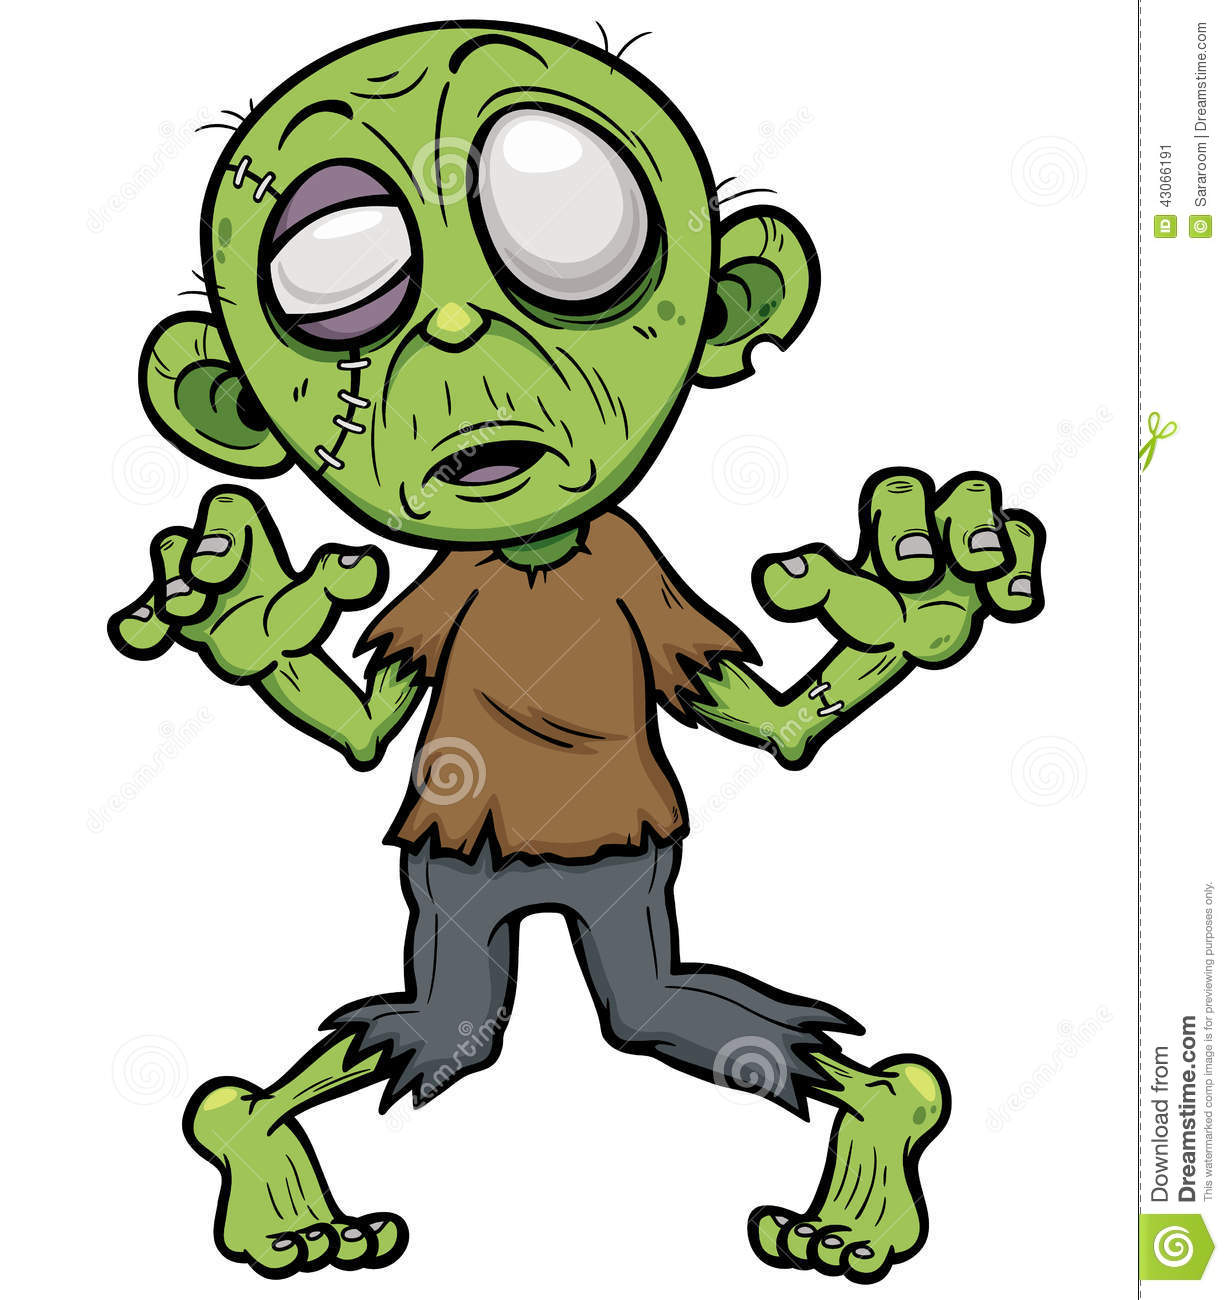 zombies clipart - photo #31